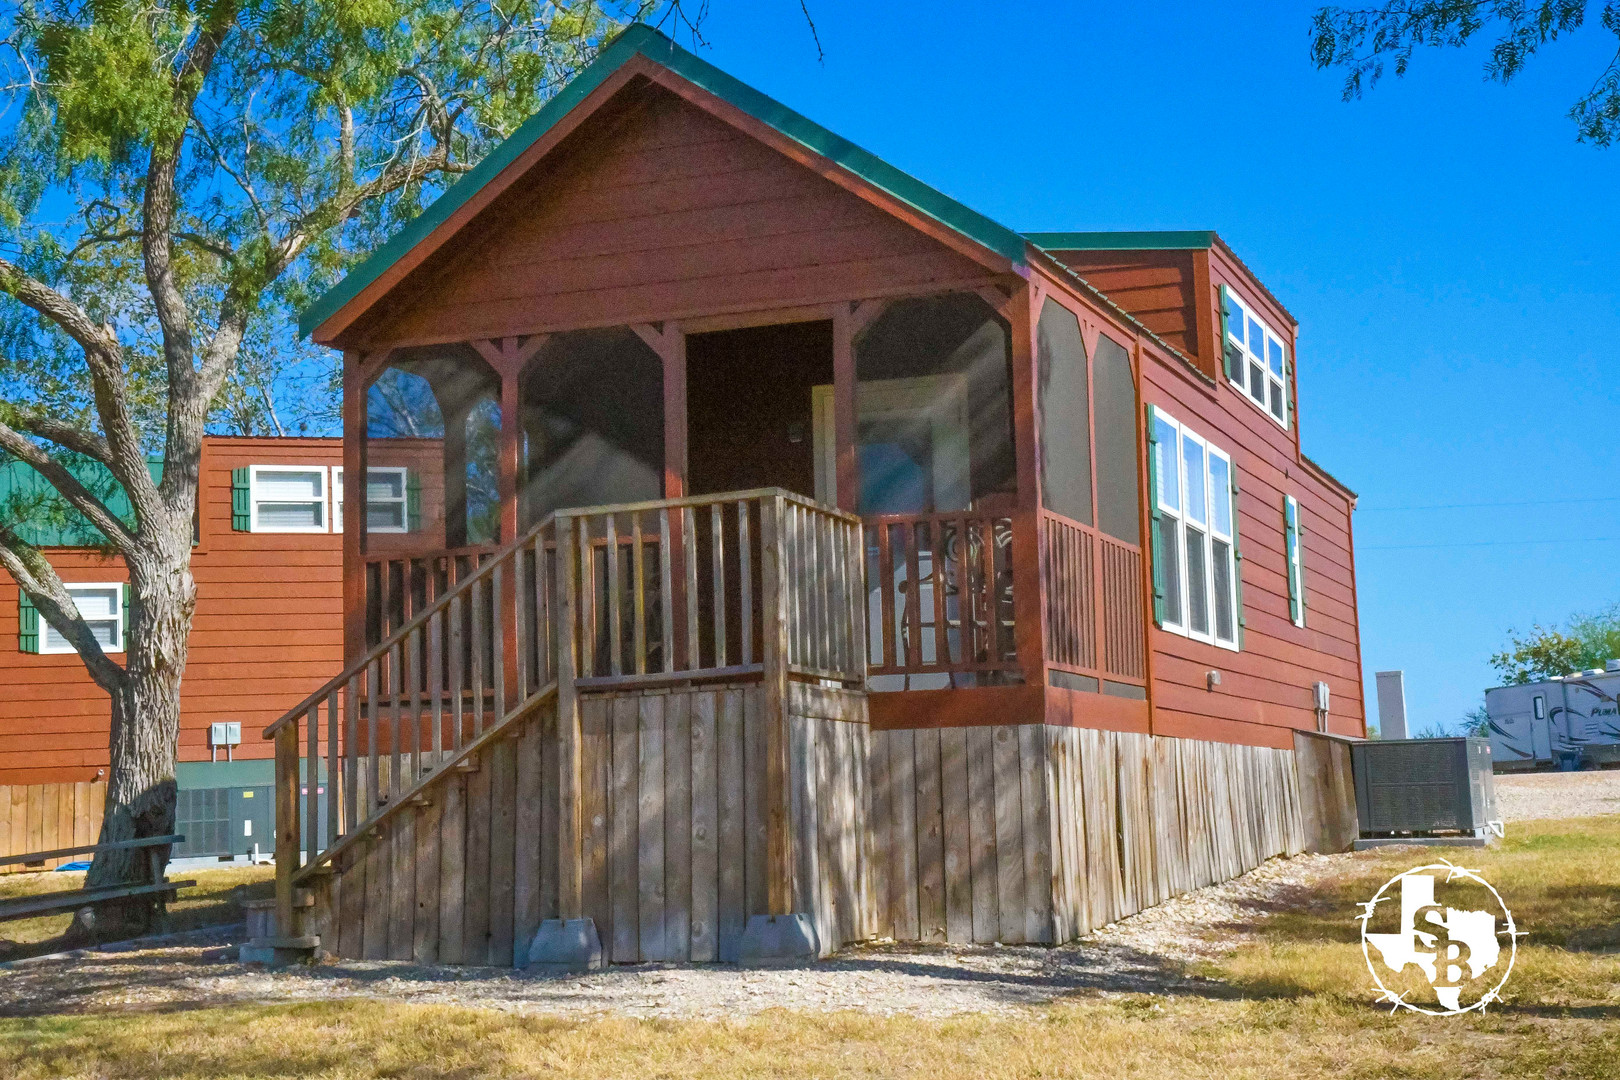 Country cozy comfort, extended stay cabins provide you with a great place to stay in Victoria Texas.